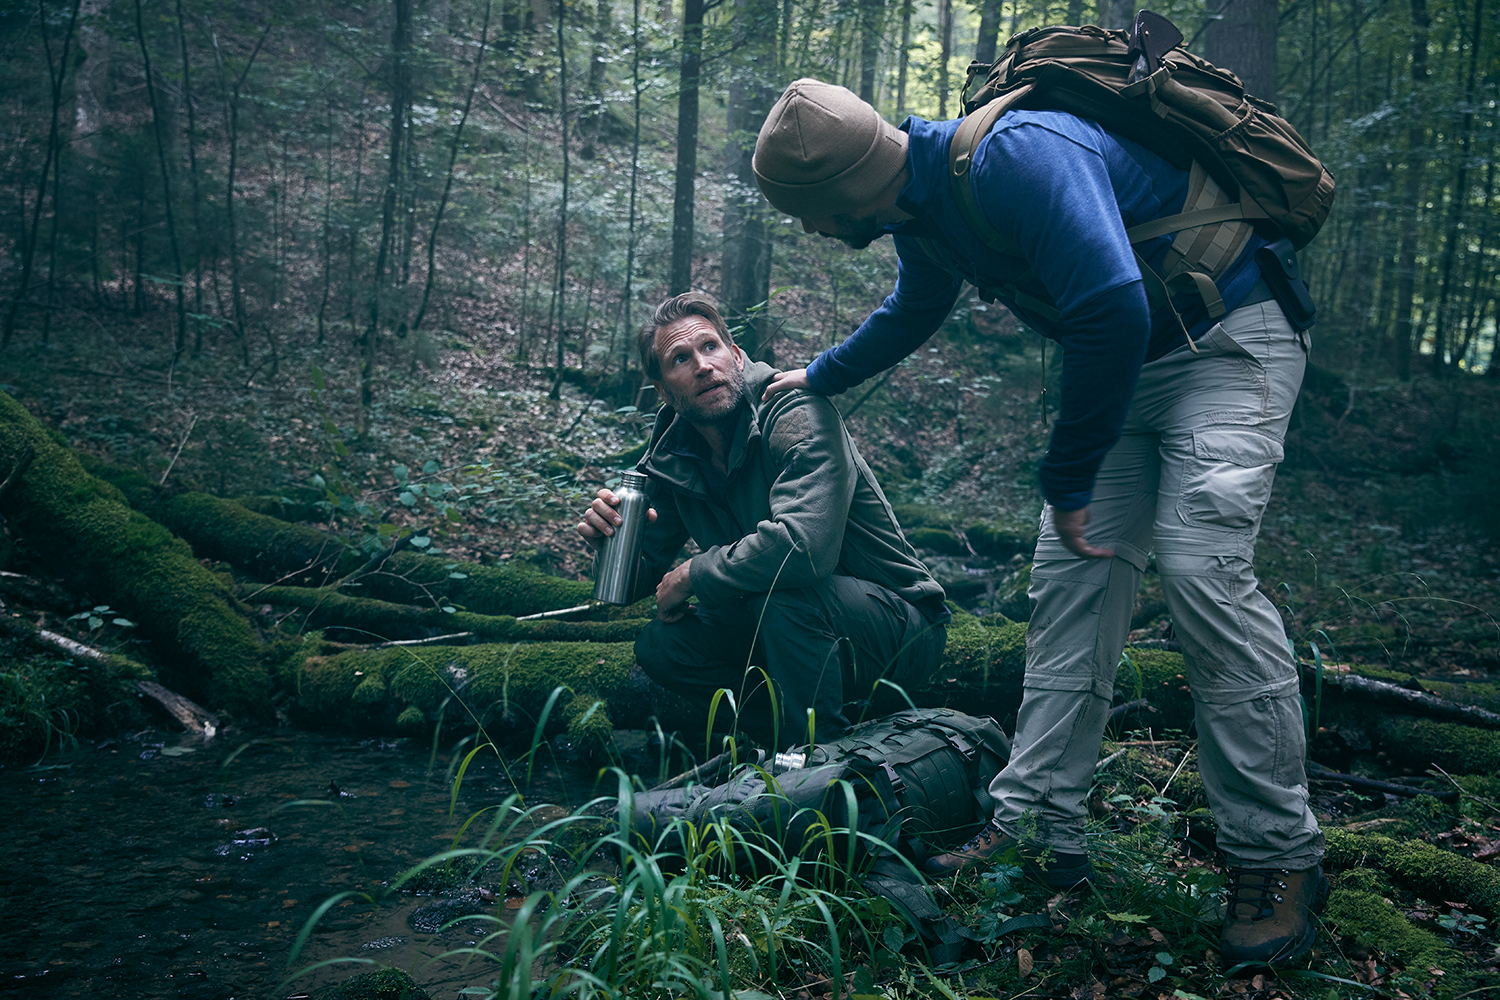 Survival trainer talking to a man drinking out of a stream in the woods